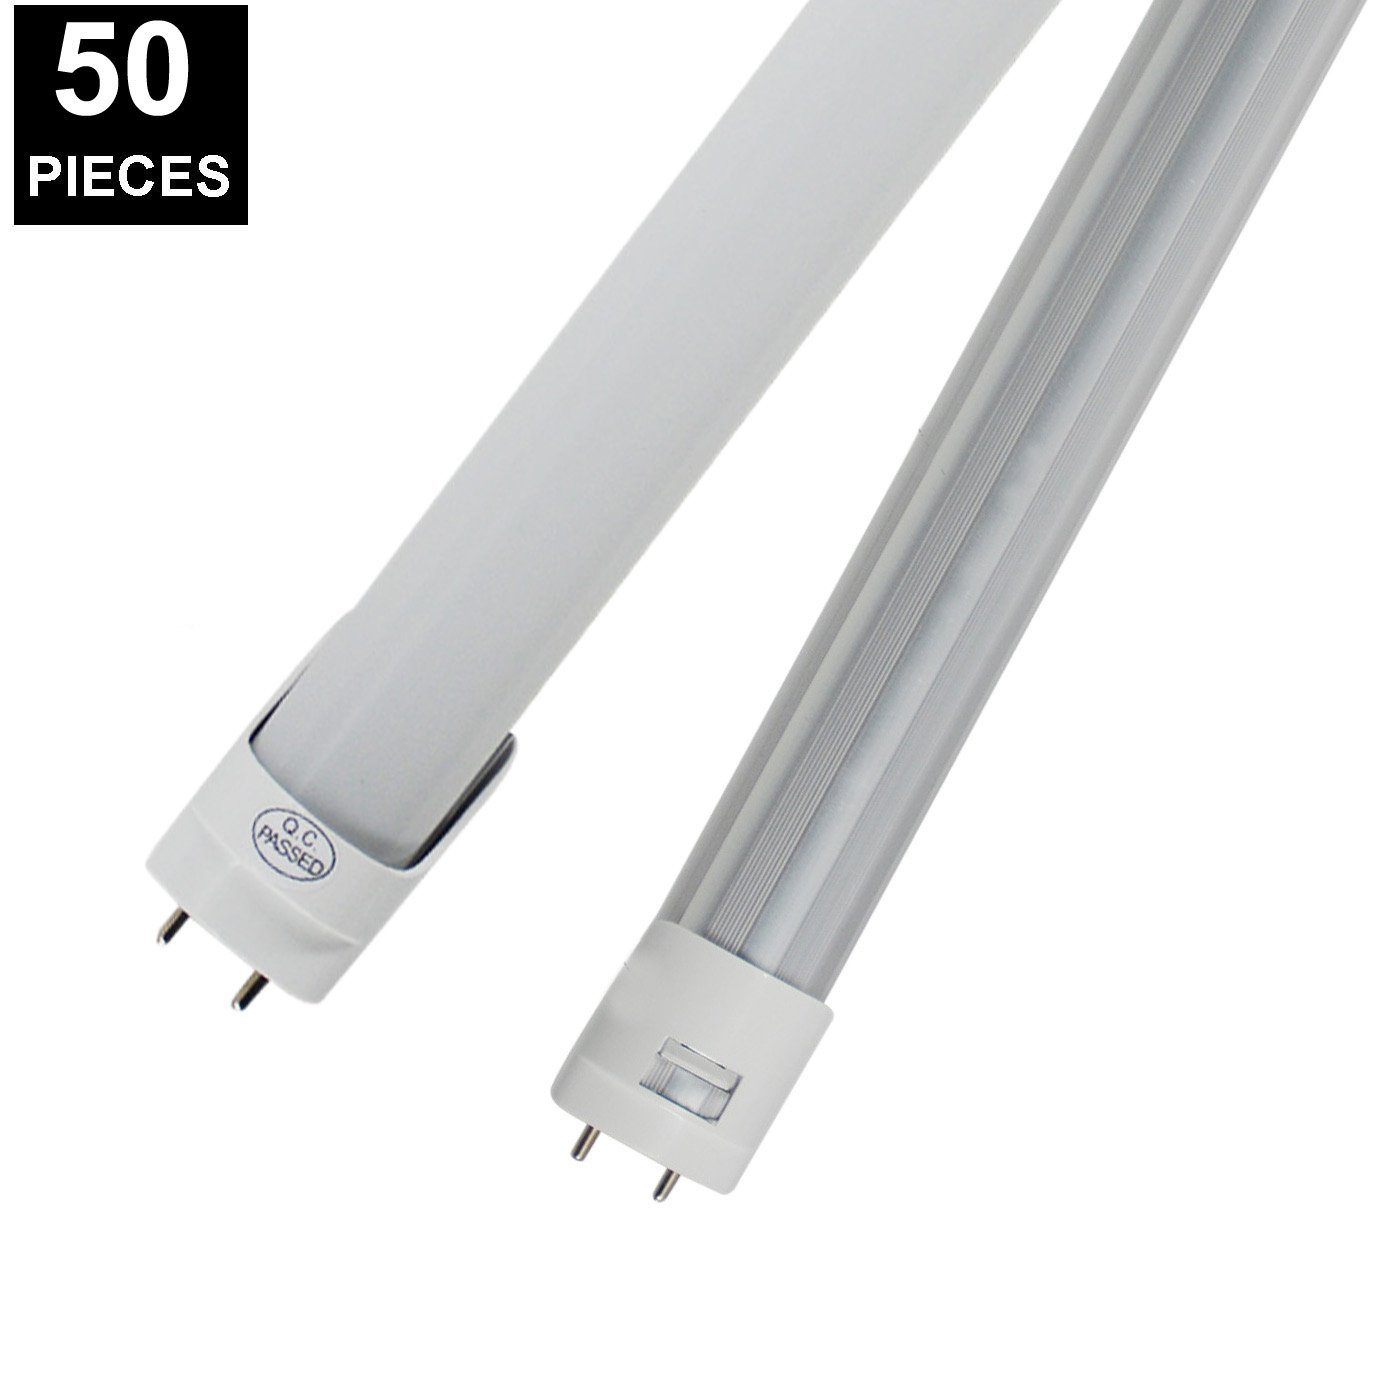 (US STOCK)CNSUNWAY 4FT G13 LED Tube, 48'' G13 Two Pin Dual Row Lighting Bulbs, 6000K Cool White with Clean Lens, AC85-265V, Work Without Ballast(50 Pack)